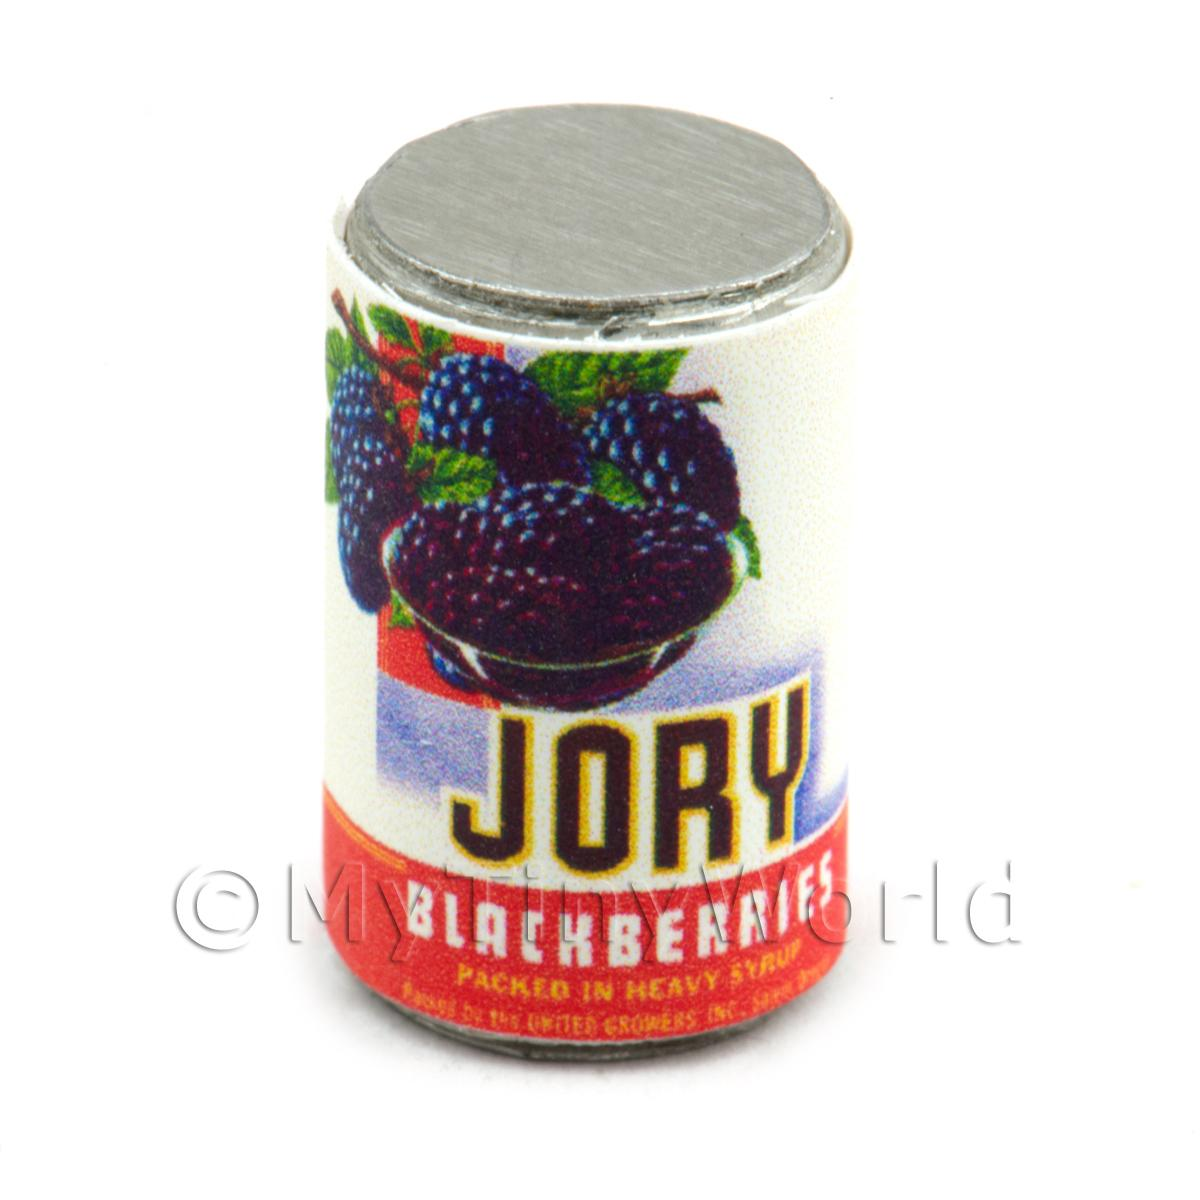 Dolls House Miniature Jory Brand Blackberries  Can (1930s)